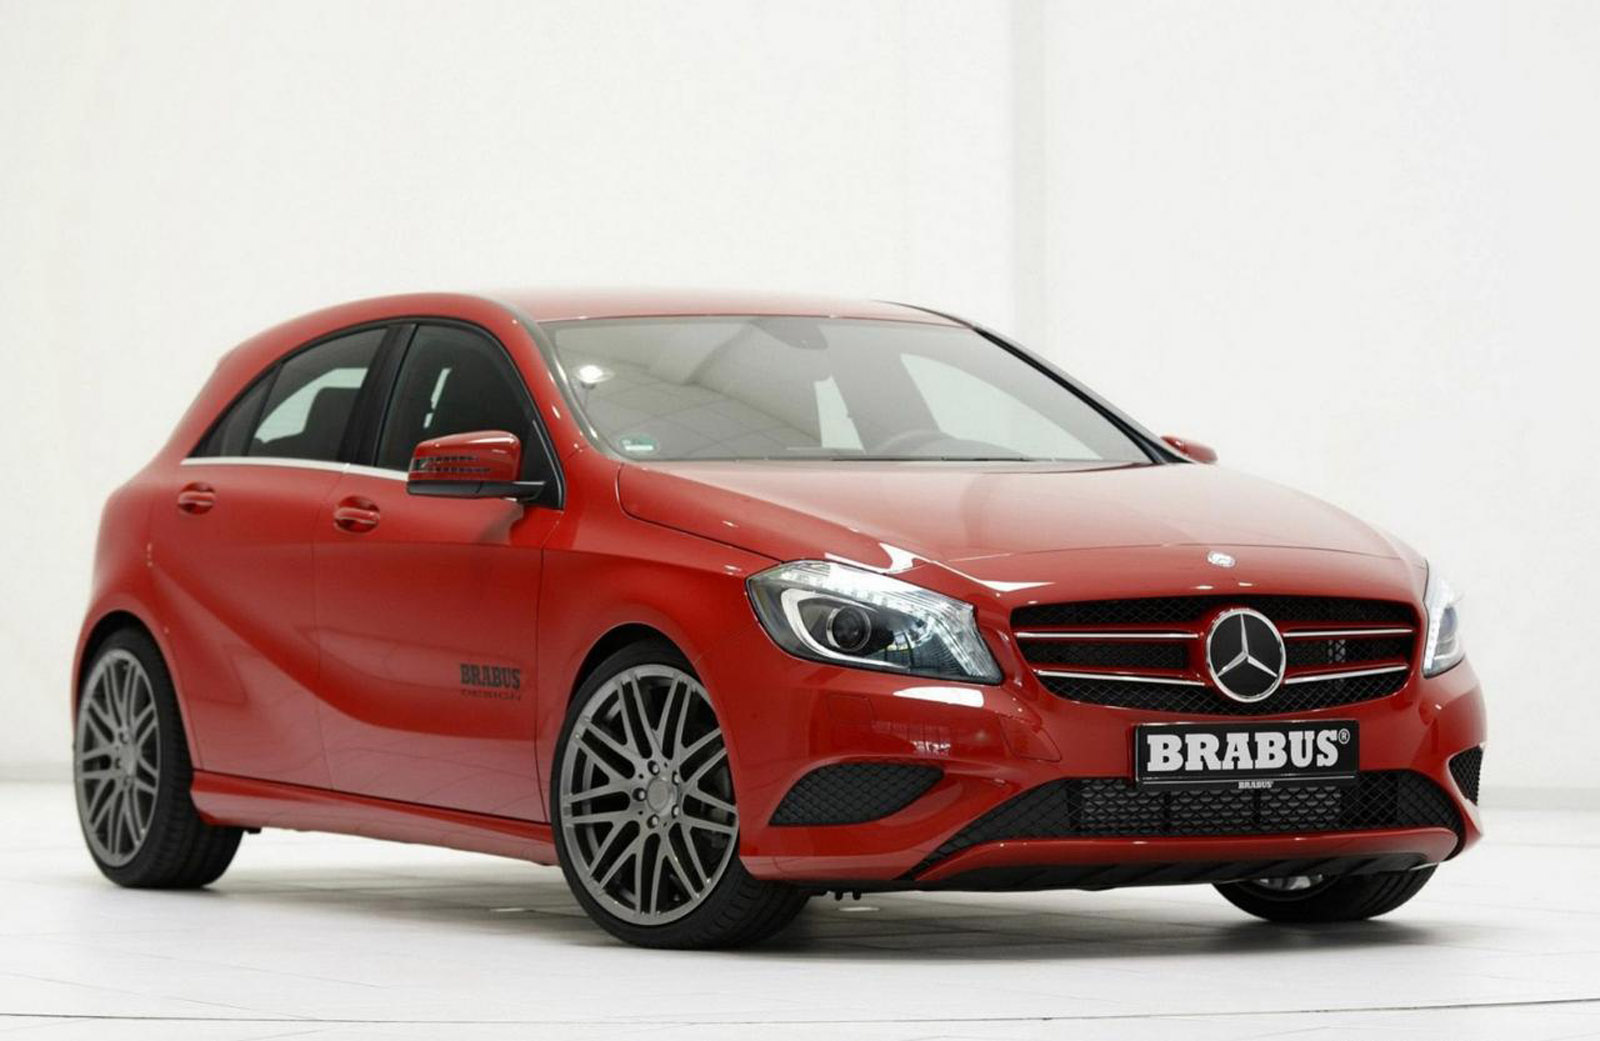 brabus 2013 mercedes benz a class. Black Bedroom Furniture Sets. Home Design Ideas